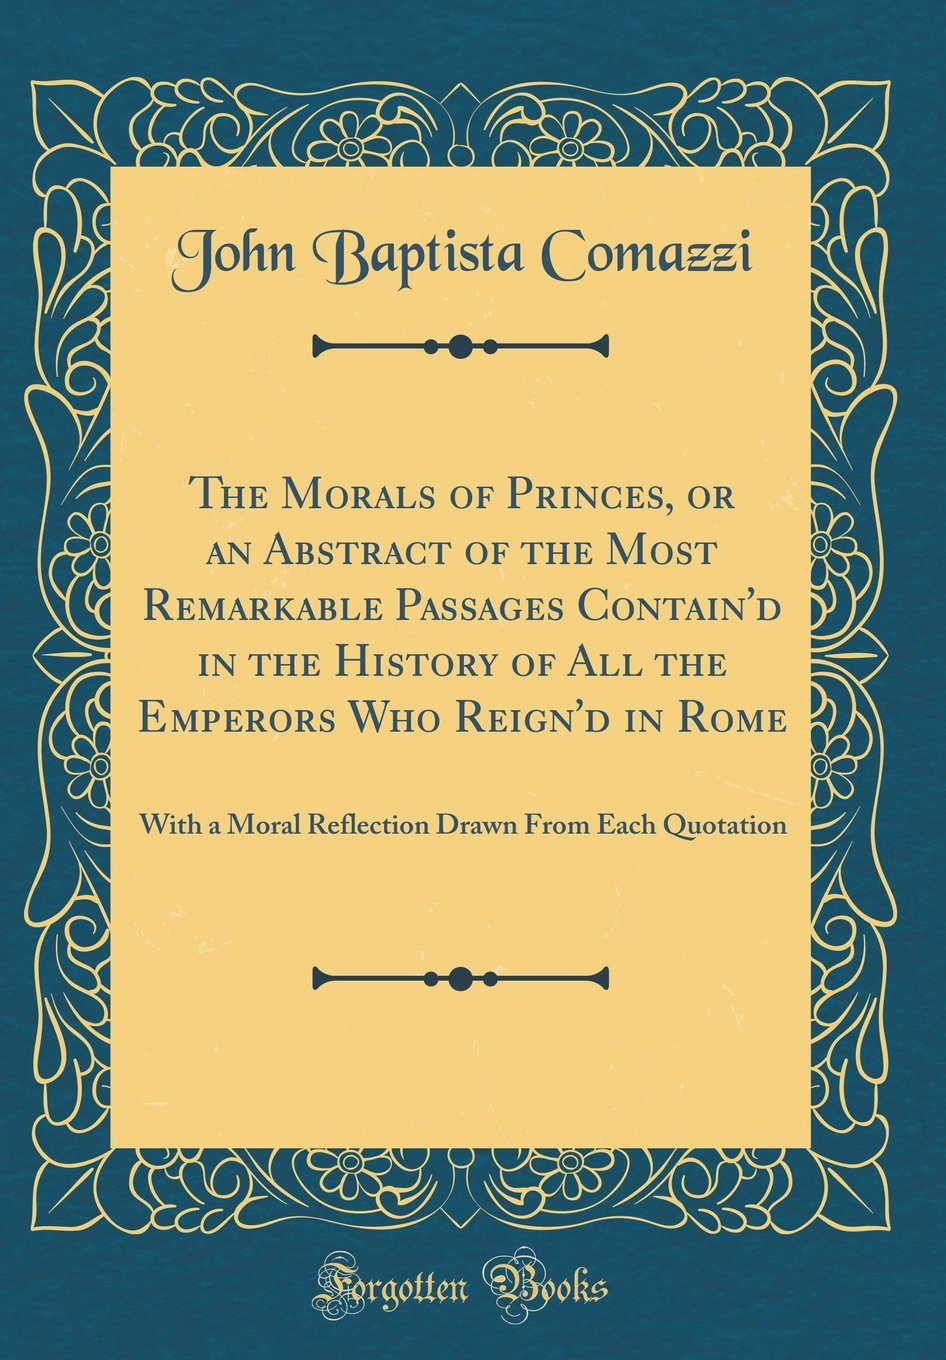 The Morals of Princes, or an Abstract of the Most Remarkable Passages Contain'd in the History of All the Emperors Who Reign'd in Rome: With a Moral ... Drawn from Each Quotation (Classic Reprint) pdf epub